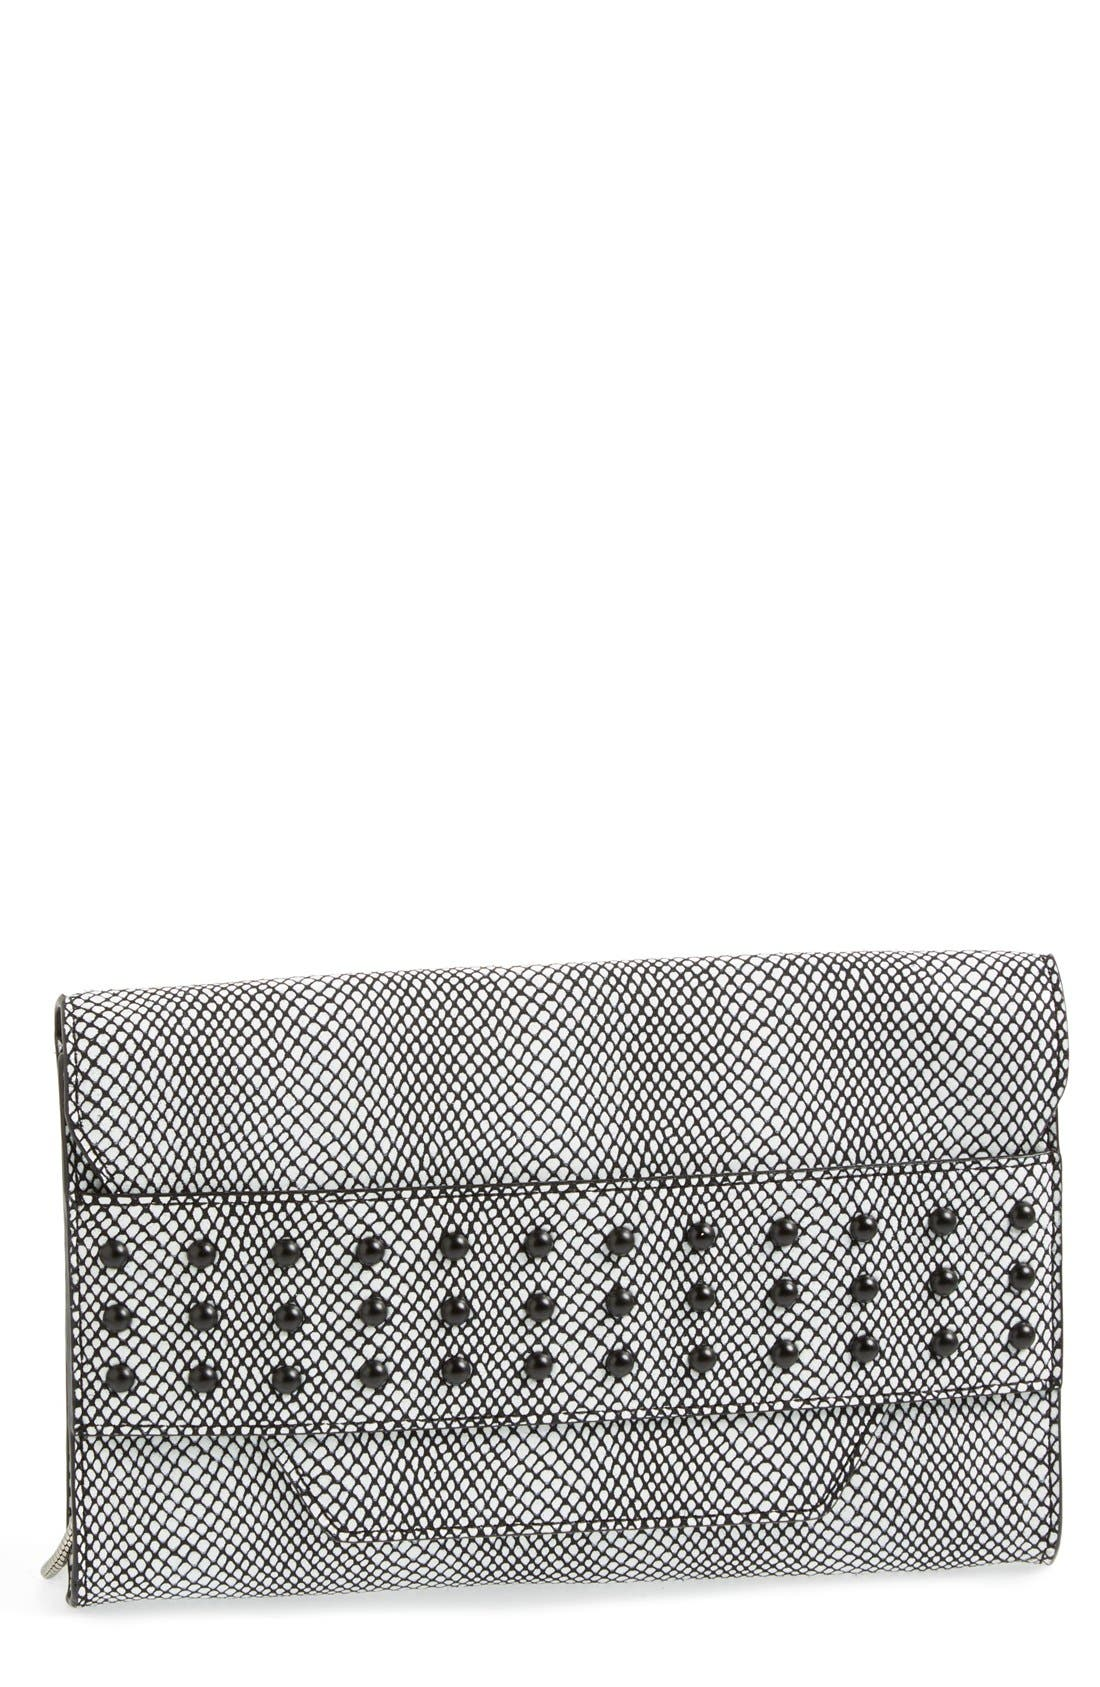 Main Image - Milly 'Irving' Clutch